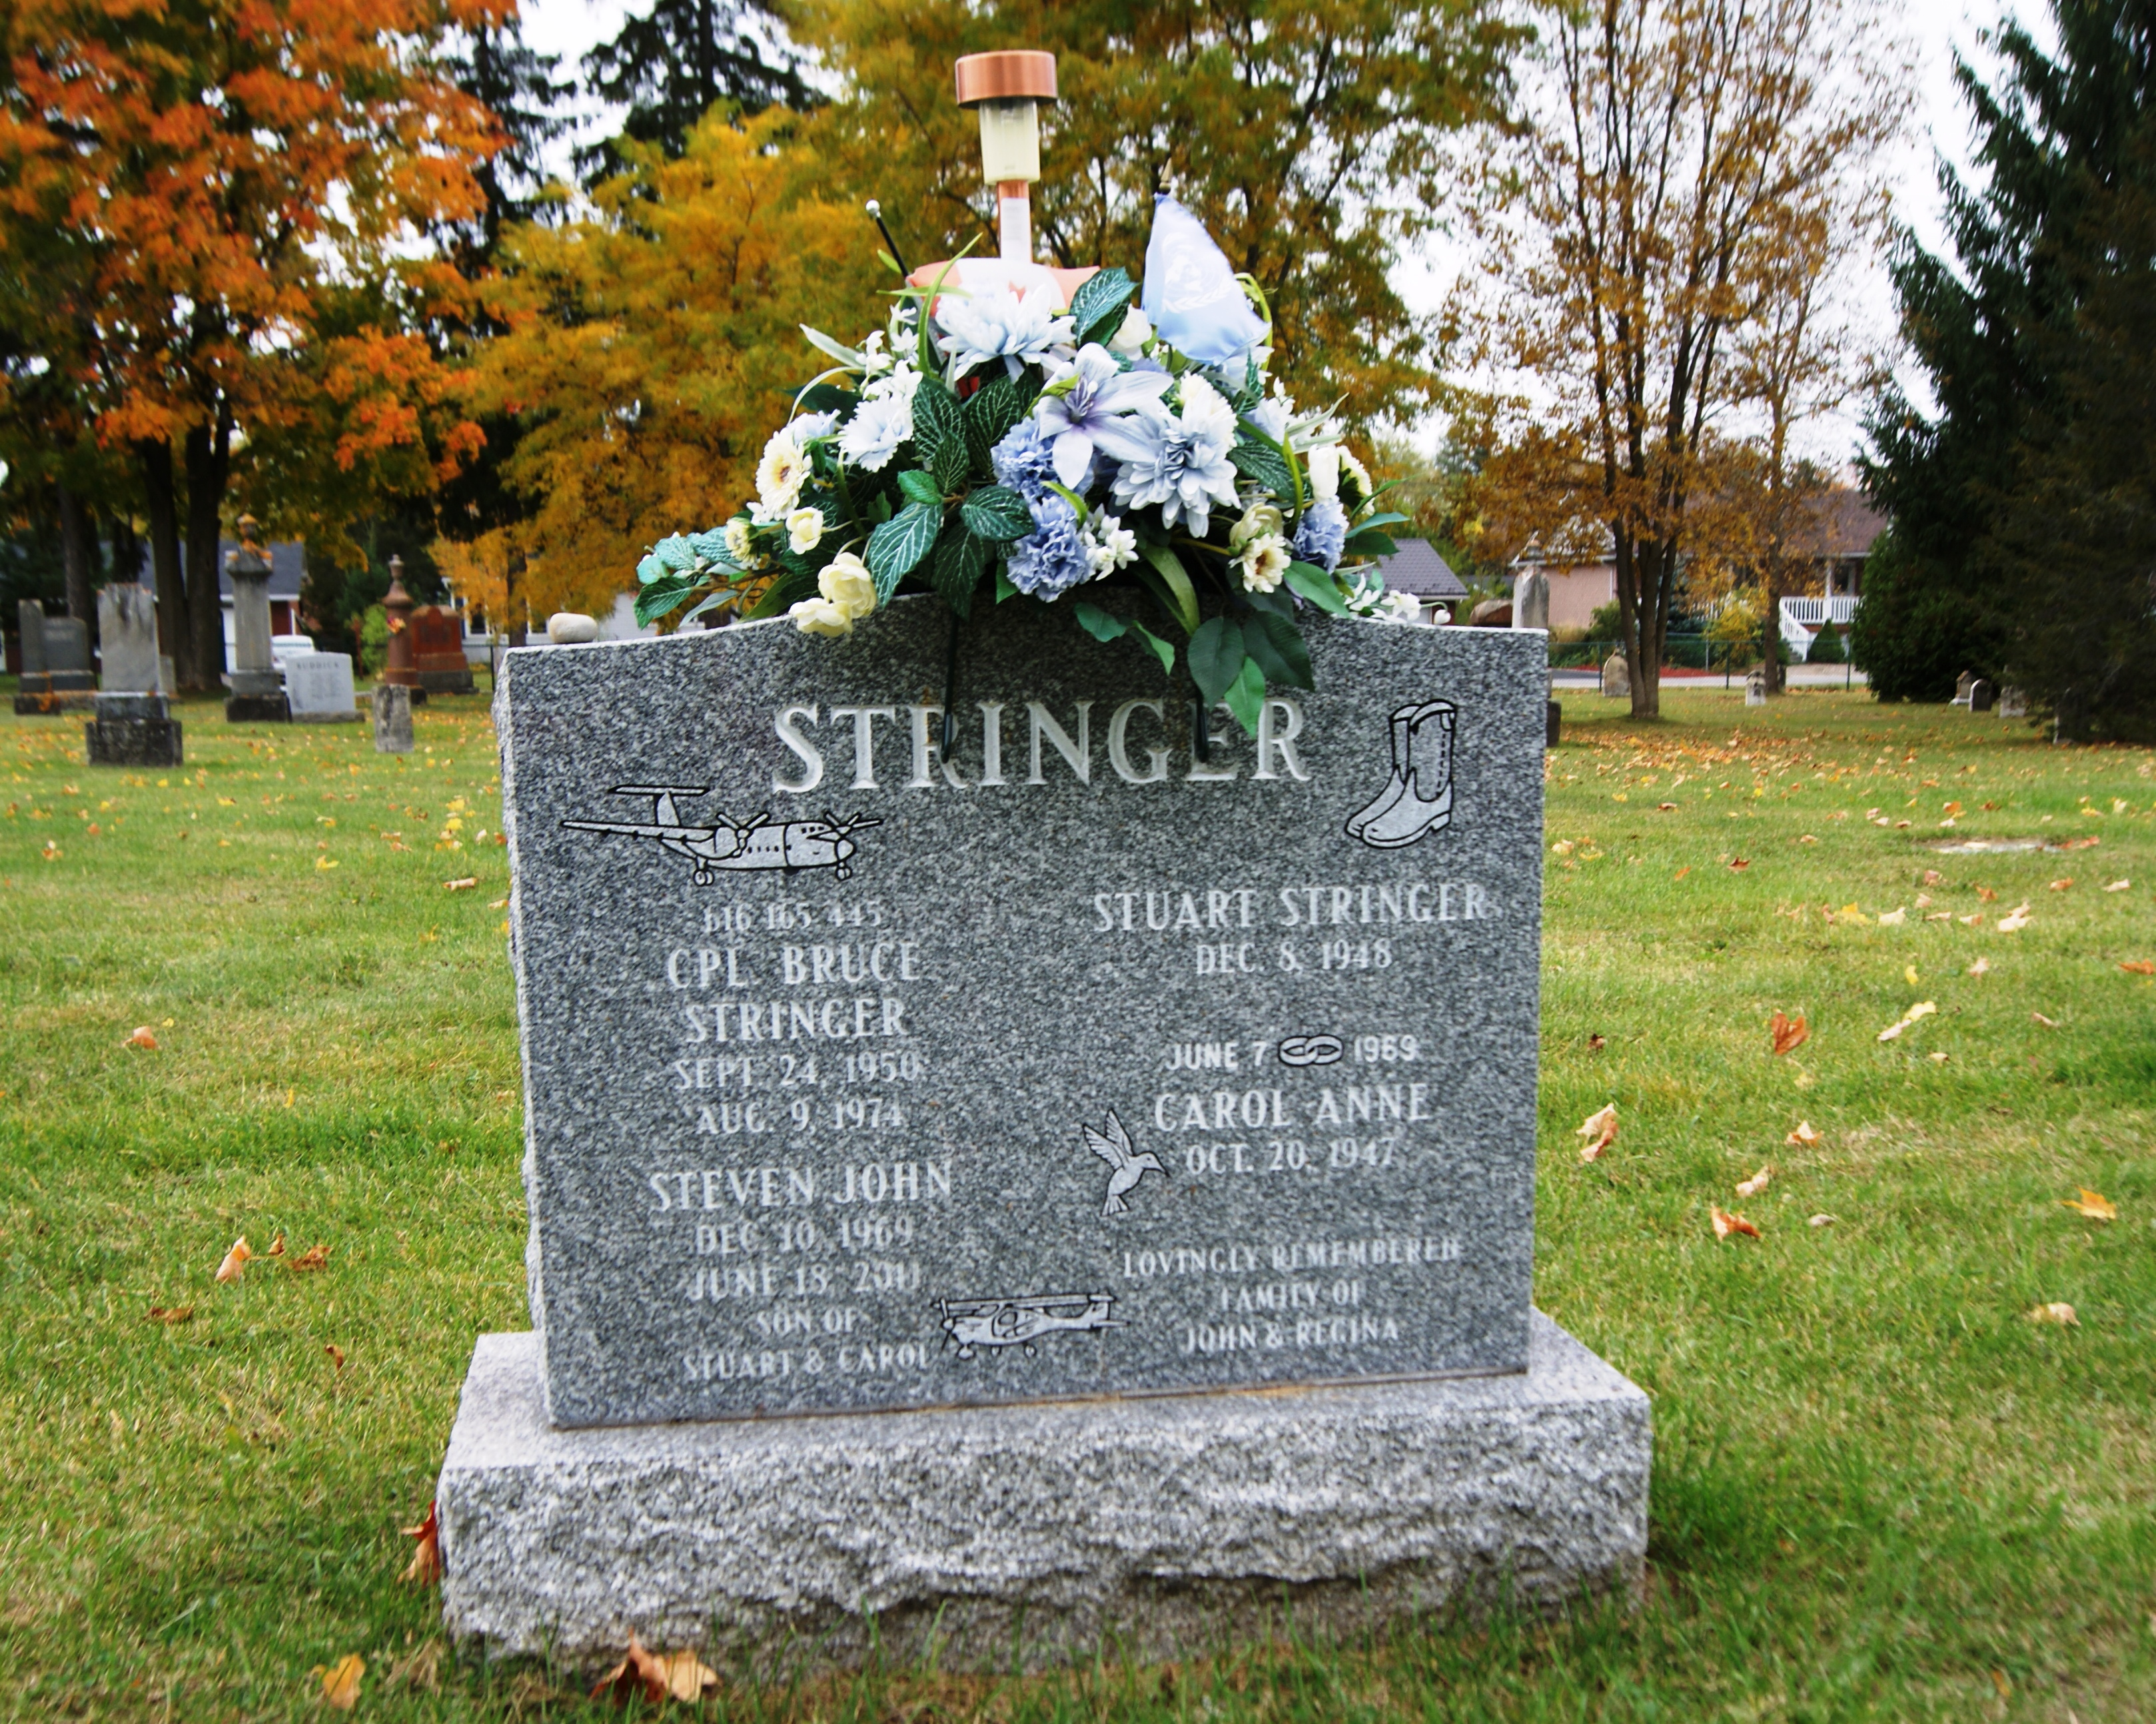 Family Memorial – Family monument at the grave of Corporal Bruce K. Stringer in the Angus Union Cemetery, 60 Vernon Street, Angus, Ontario.  (Image taken by Gregory J. Barker of Barrie, Ontario, in 2015.)